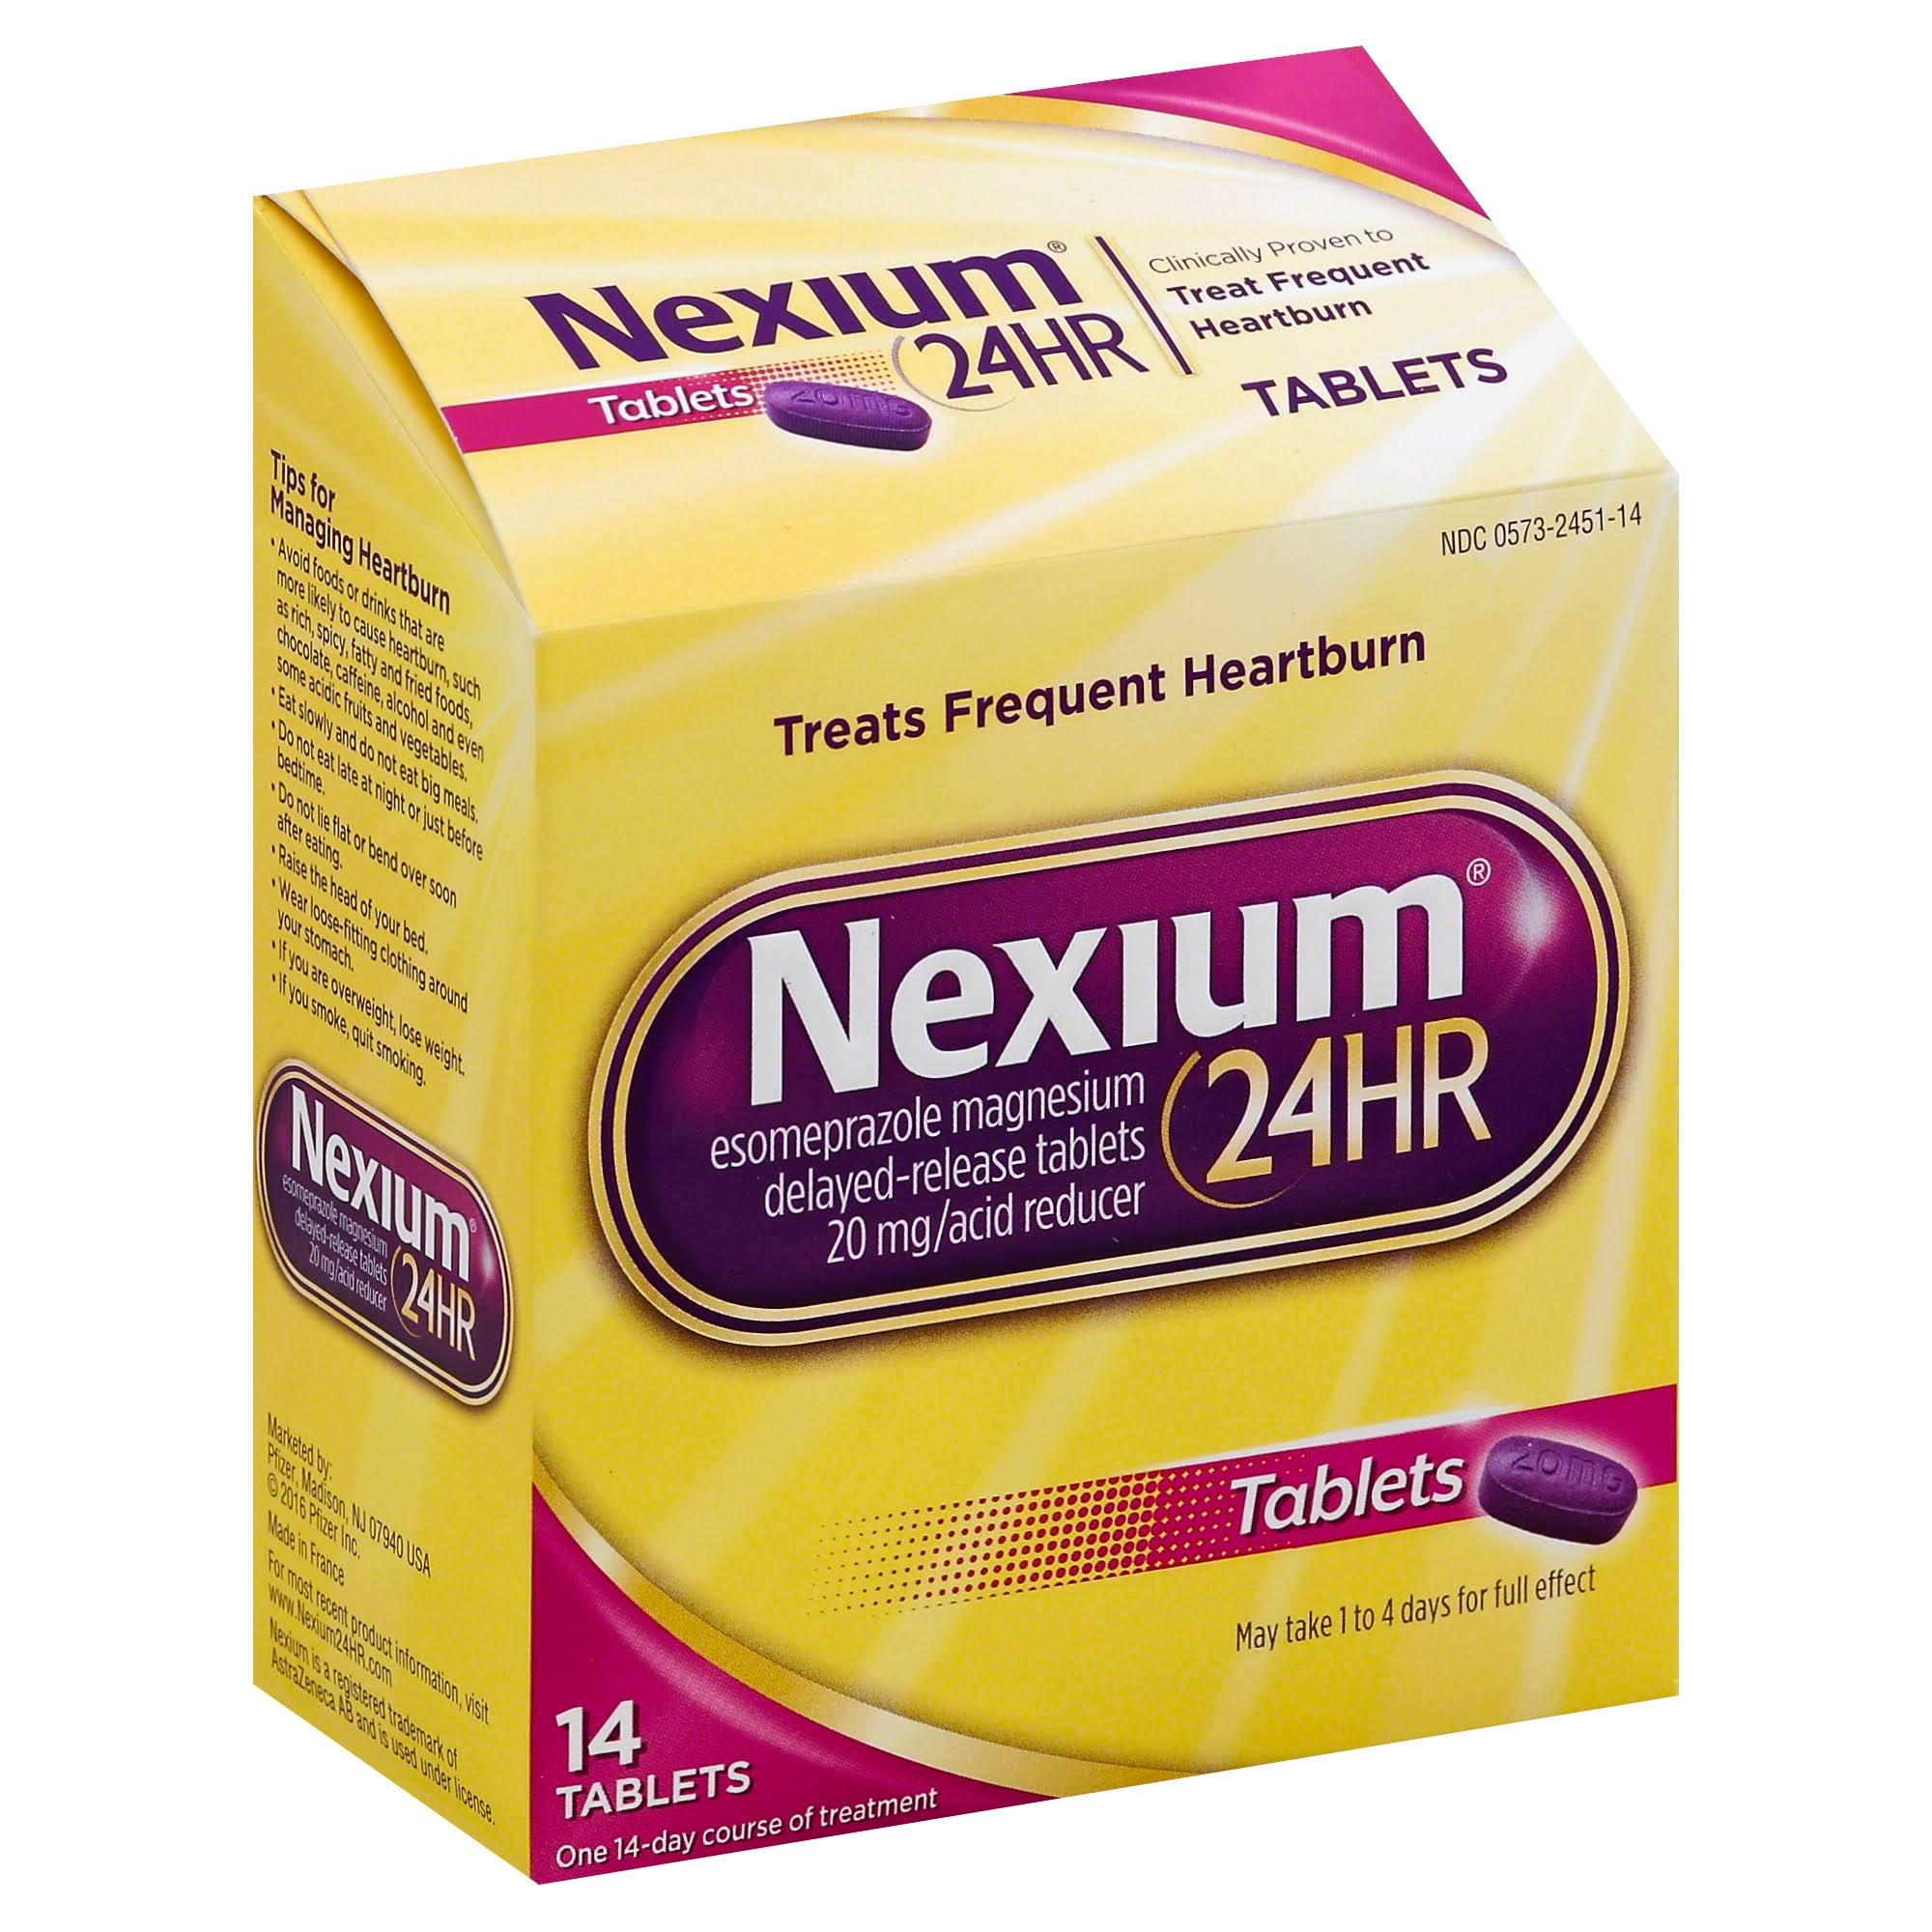 Nexium 24hr Treats Frequent Heartburn Treatment - 14ct